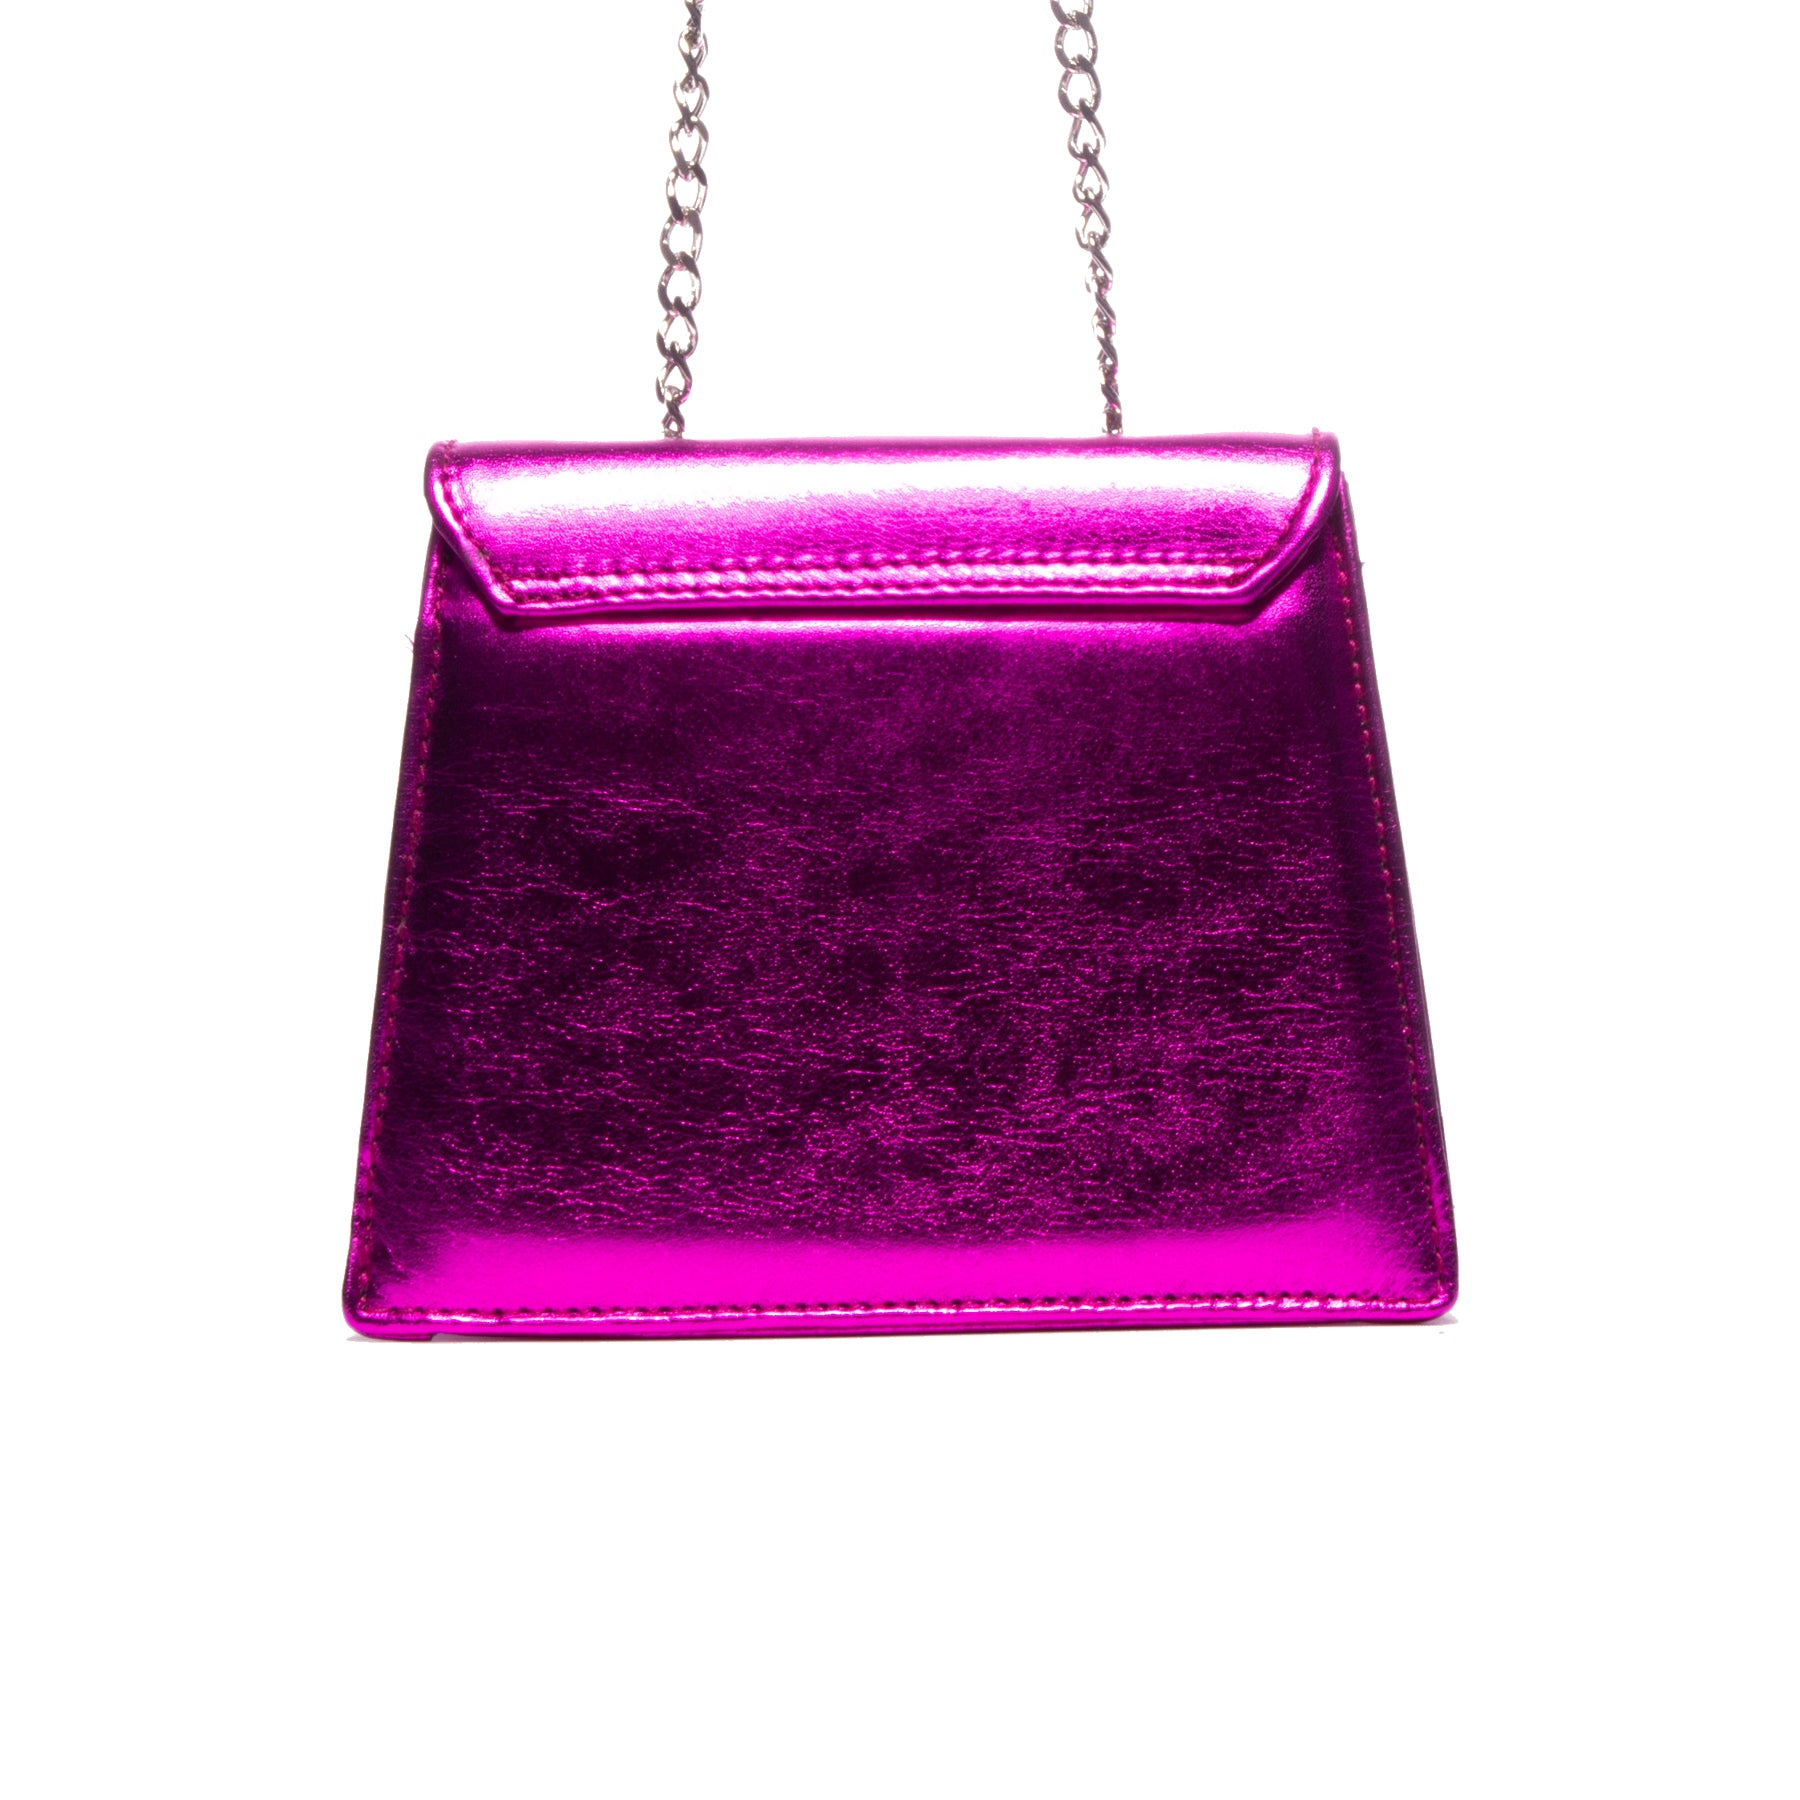 Kya Fushcia Metallic Leather Mini Bag